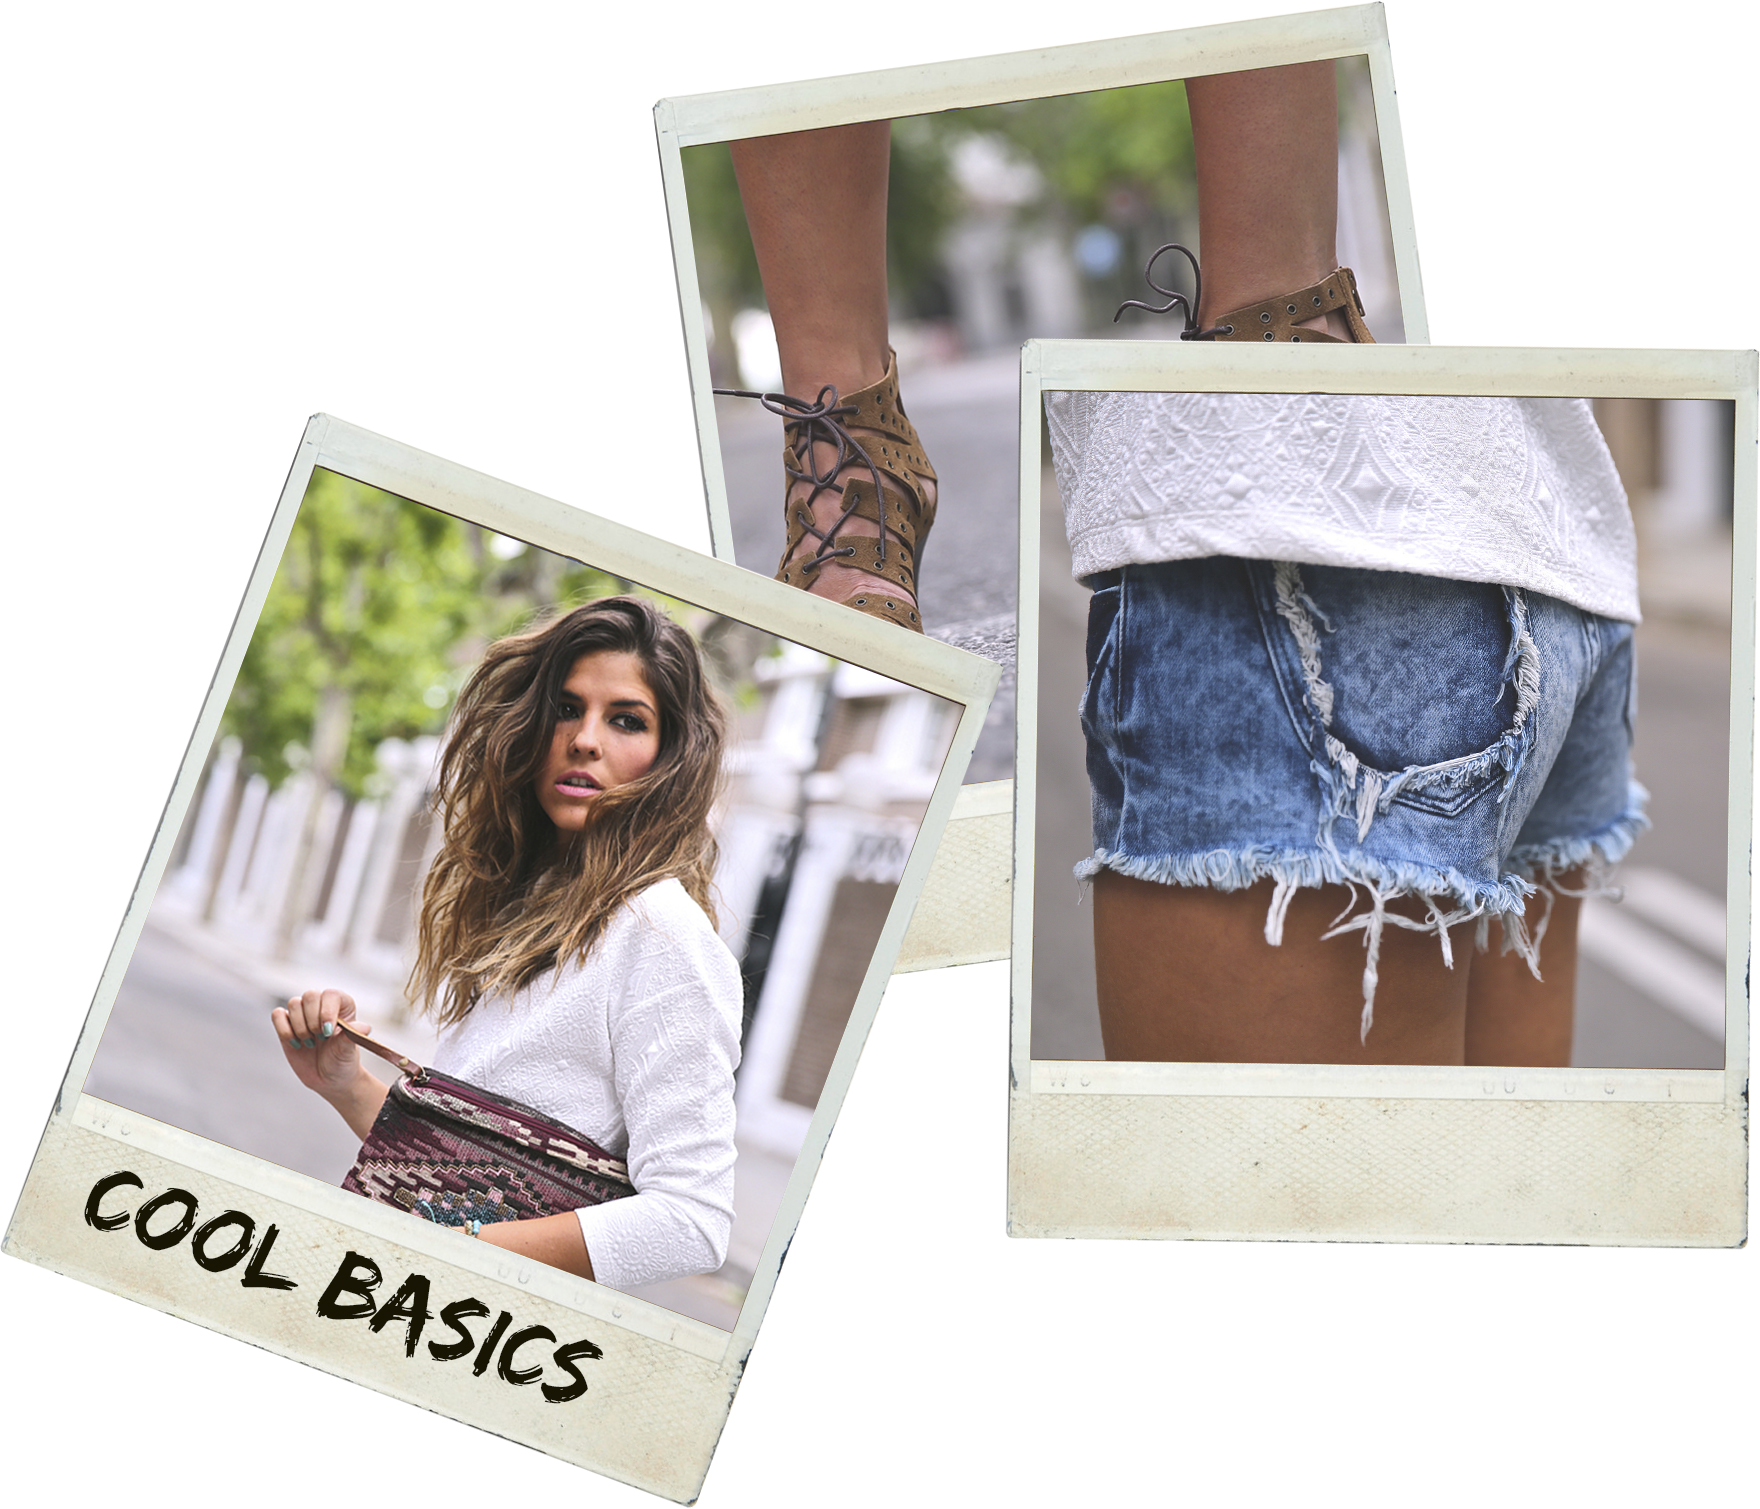 trendy_taste-look-outfit-street_style-ootd-blog-blogger-fashion_spain-moda_españa-denim_shorts-shorts_vaqueros-top_blanco-white_top-sandalias_cordones-ethnic_cluth-clutch_etnico-el_corte_ingles-polaroid